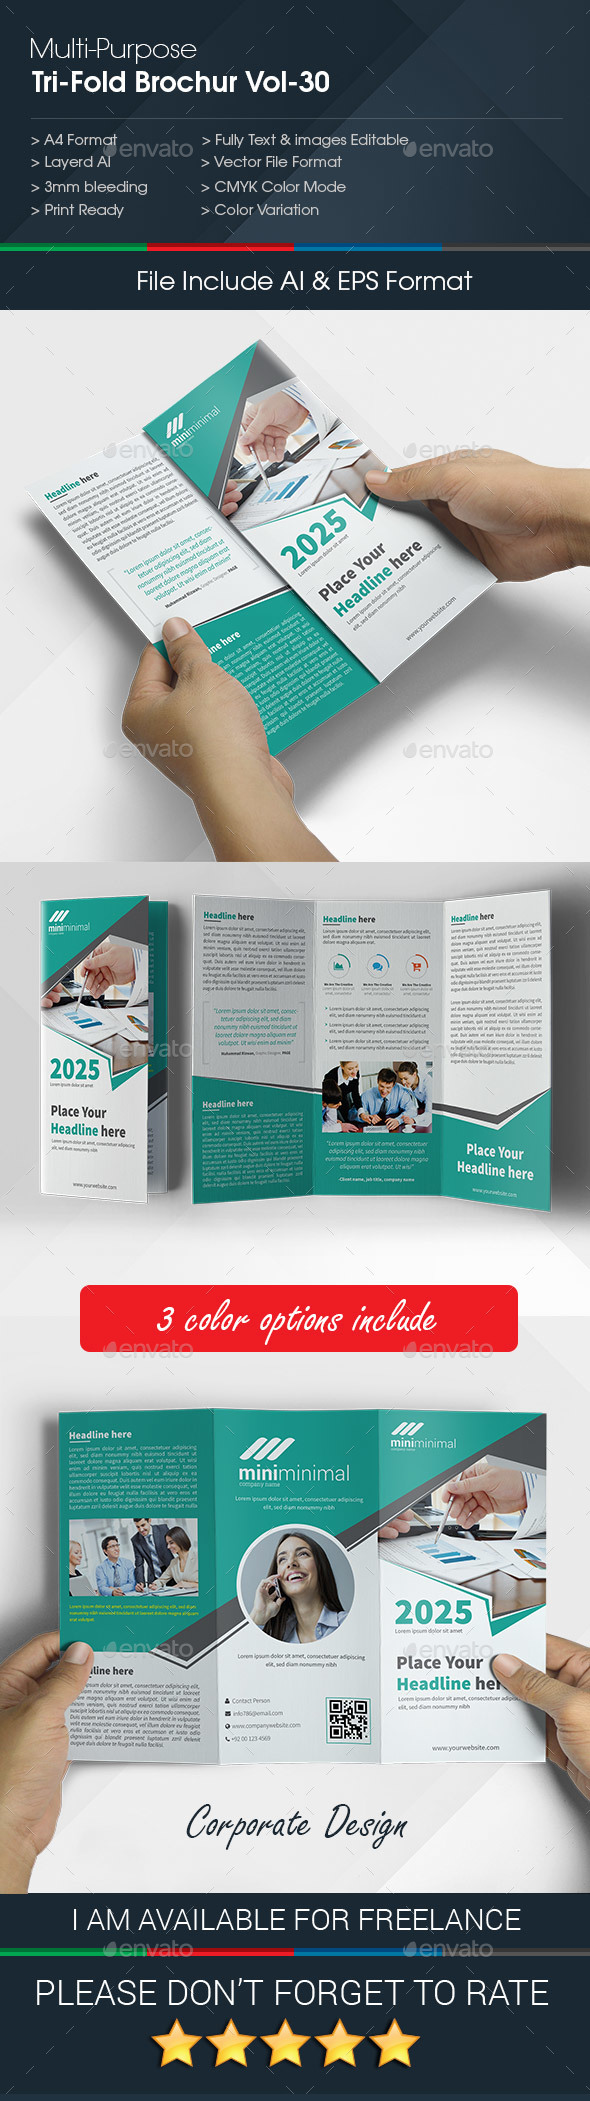 Multipurpose Business Tri-Fold Brochure Vol-30 - Corporate Brochures